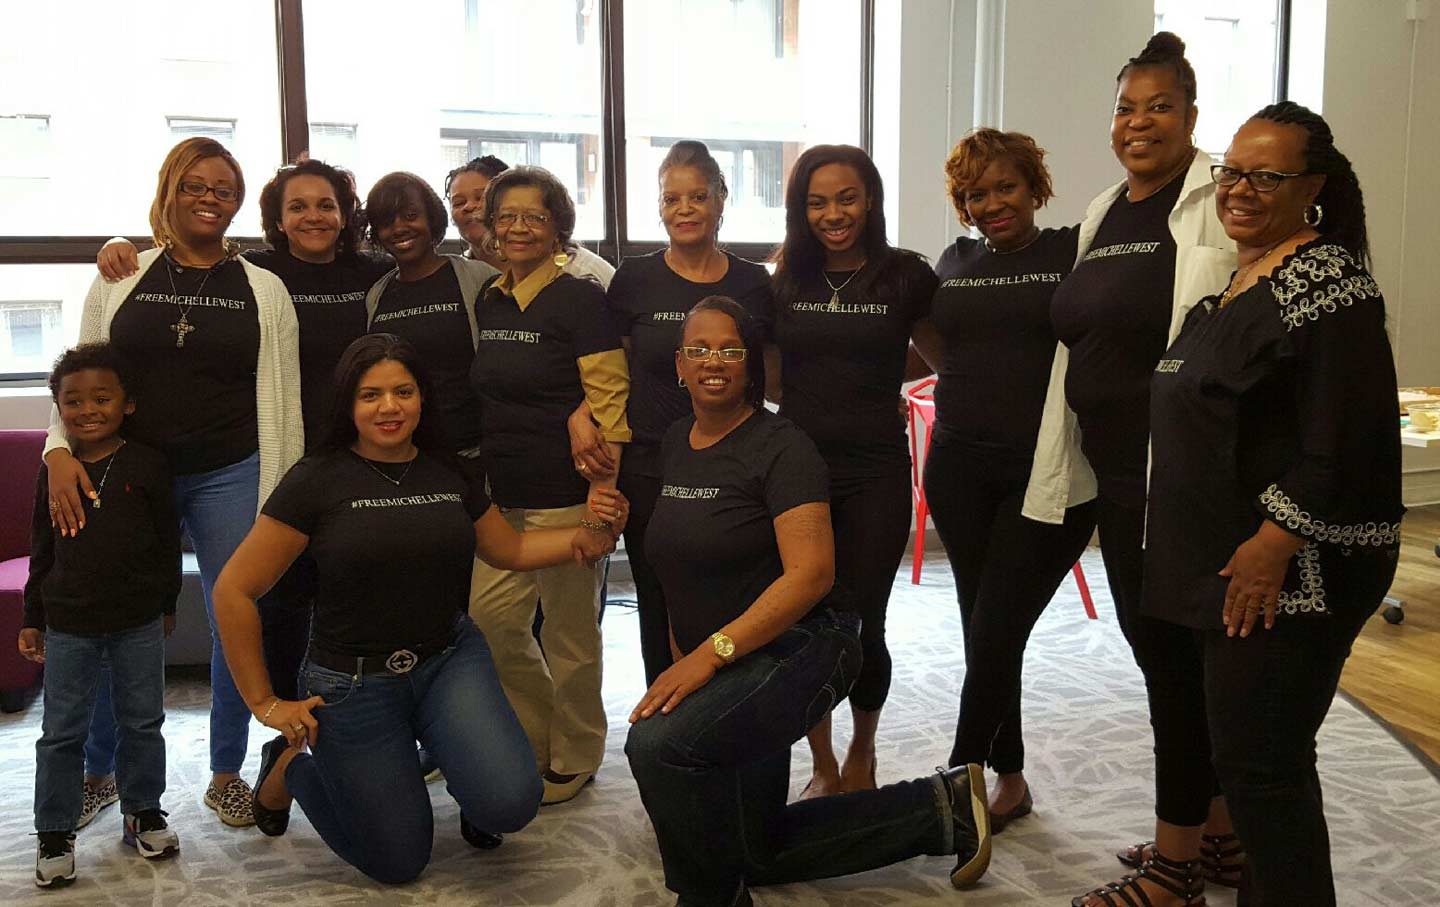 National Council for Incarcerated and Formerly Incarcerated Women and Girls